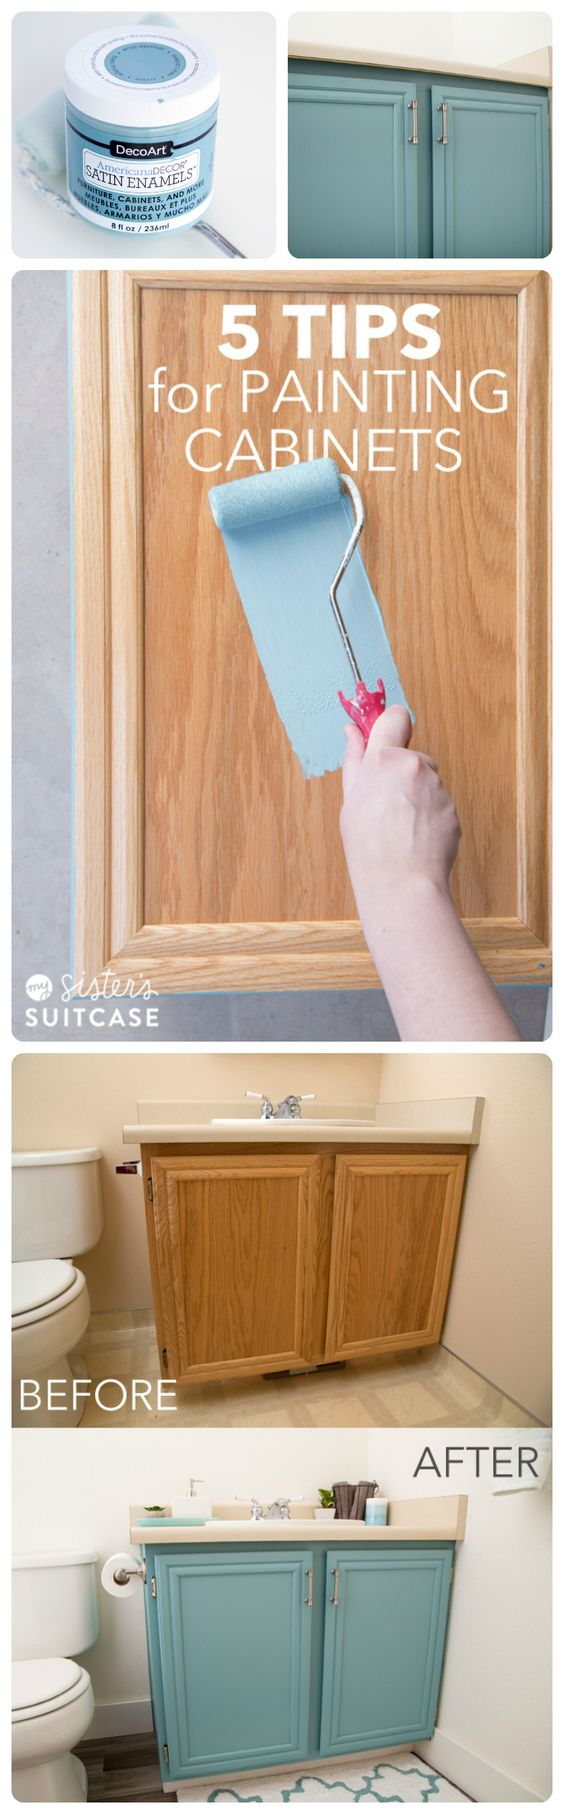 Painting tips cabinets and kid on pinterest for Bathroom cabinets painting ideas